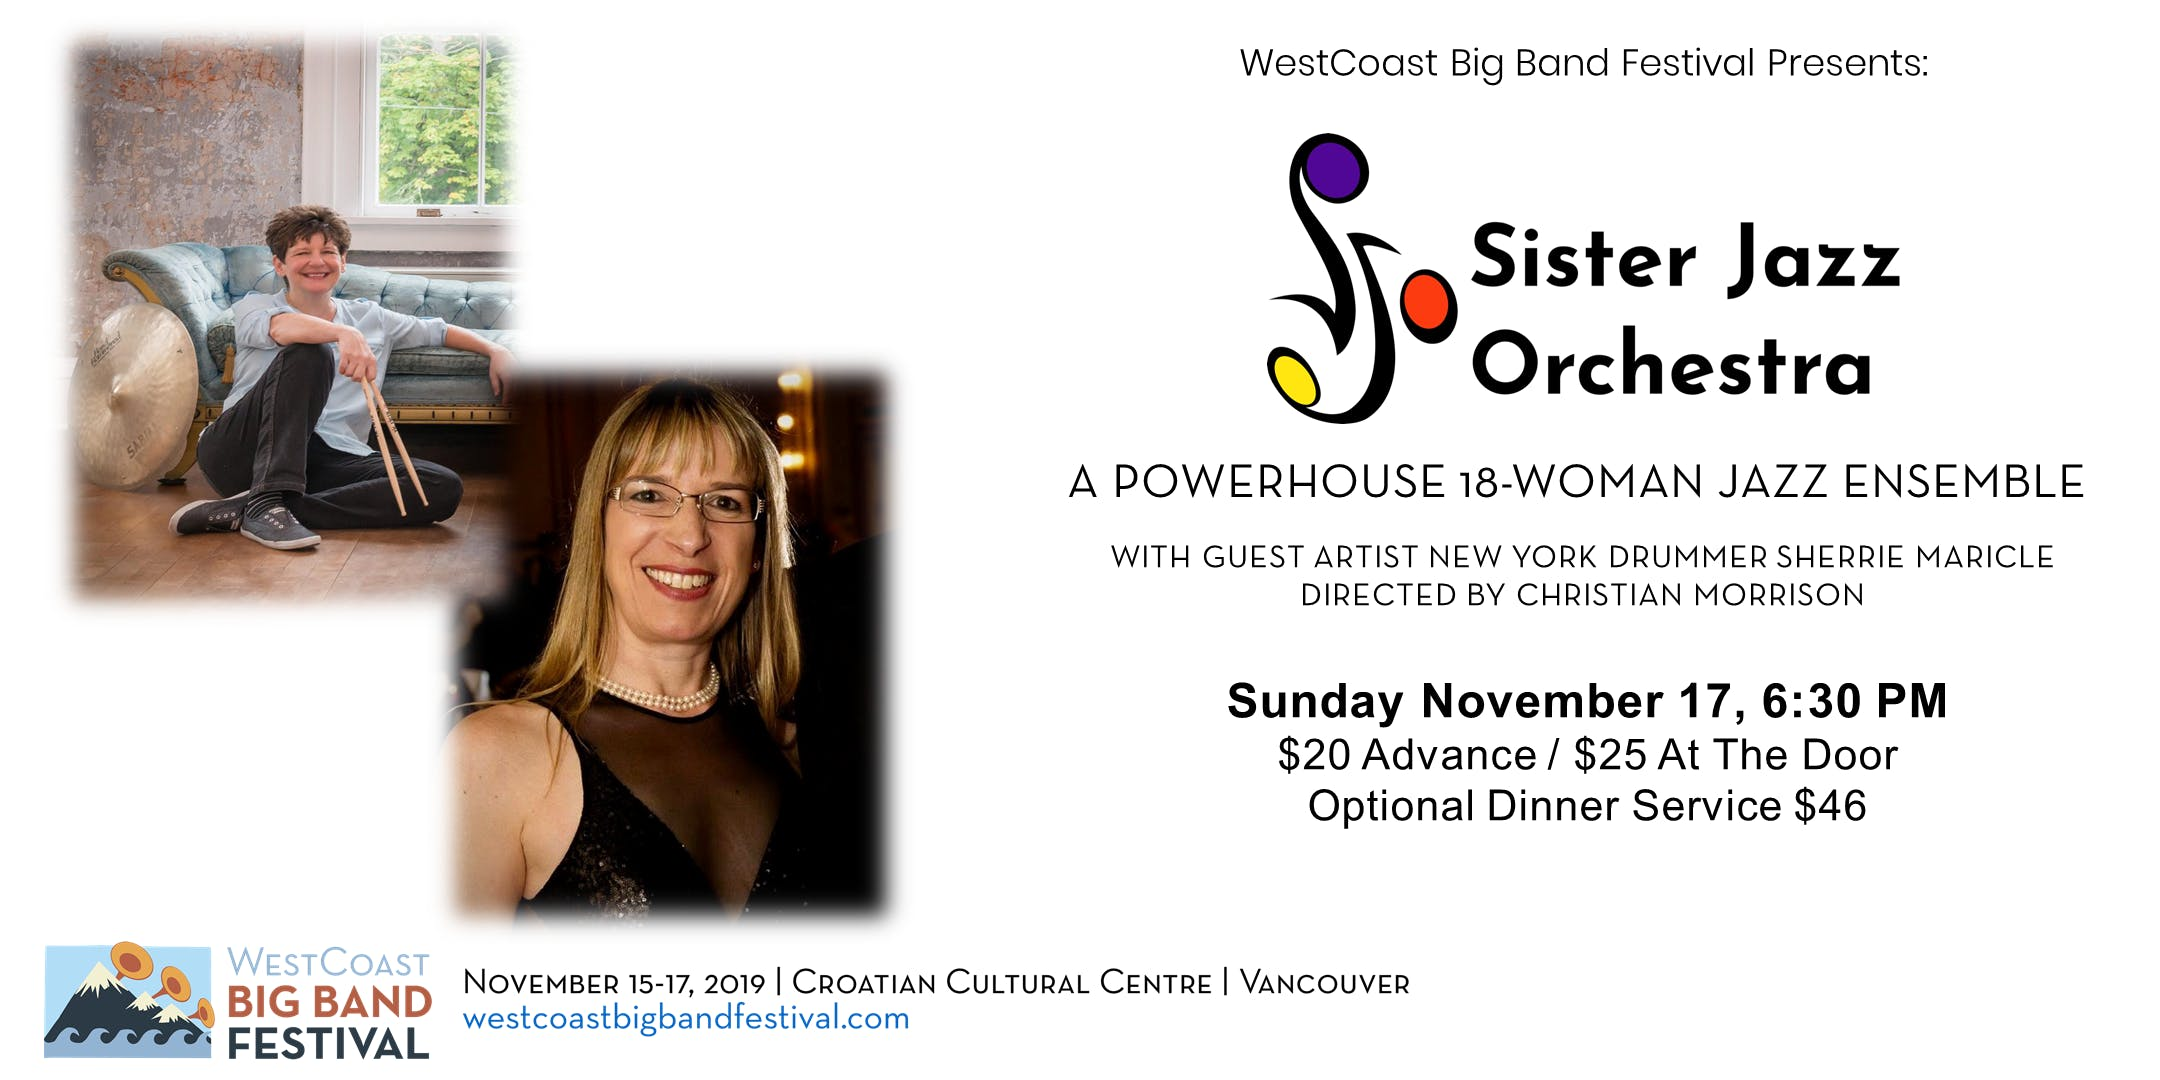 WestCoast Big Band Festival Finale Featuring Sister Jazz Orchestra